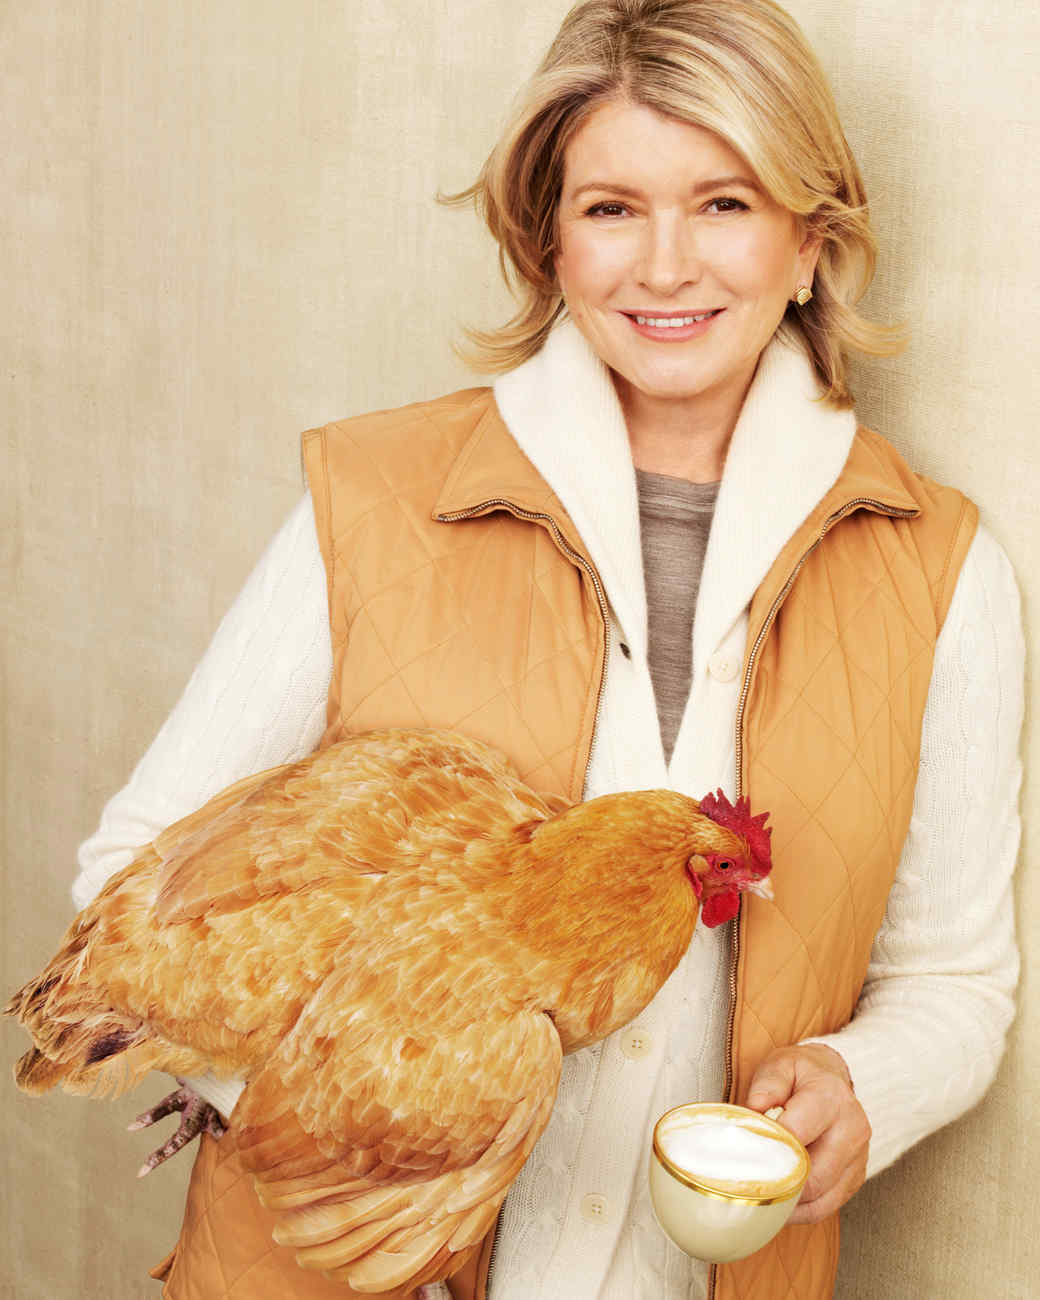 ma105494_0210_martha_chicken_cap.jpg